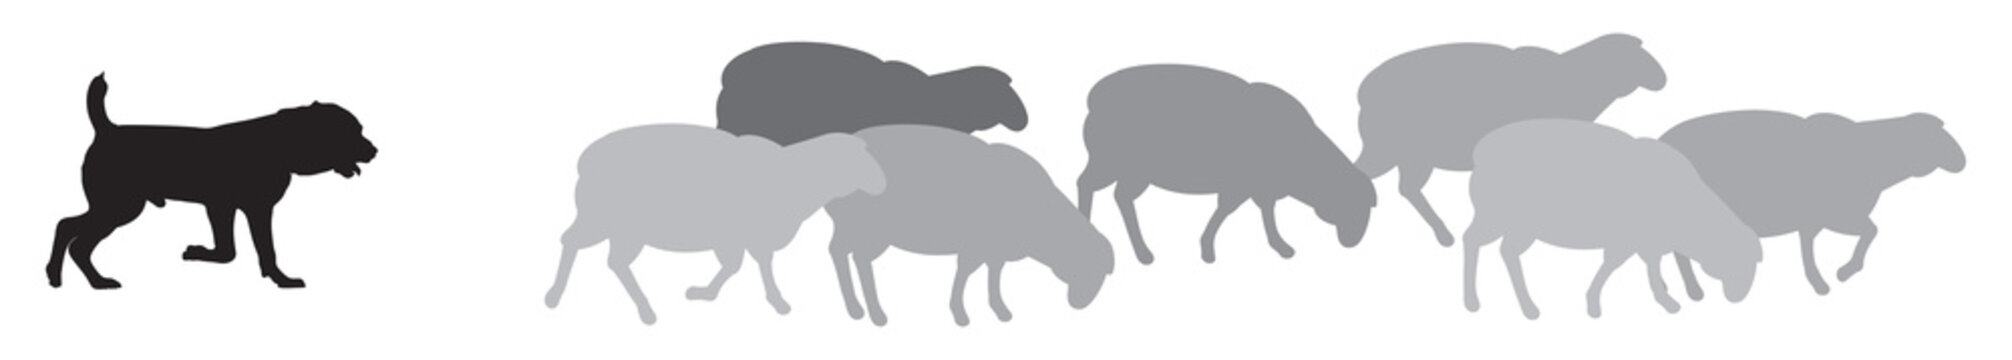 Sheep with Shepherd Dog Silhouettes, a guard sheepdog protects a flock of sheep from predators, livestock guardian dog (LGD), a type of pastoral dog bred vector illustration